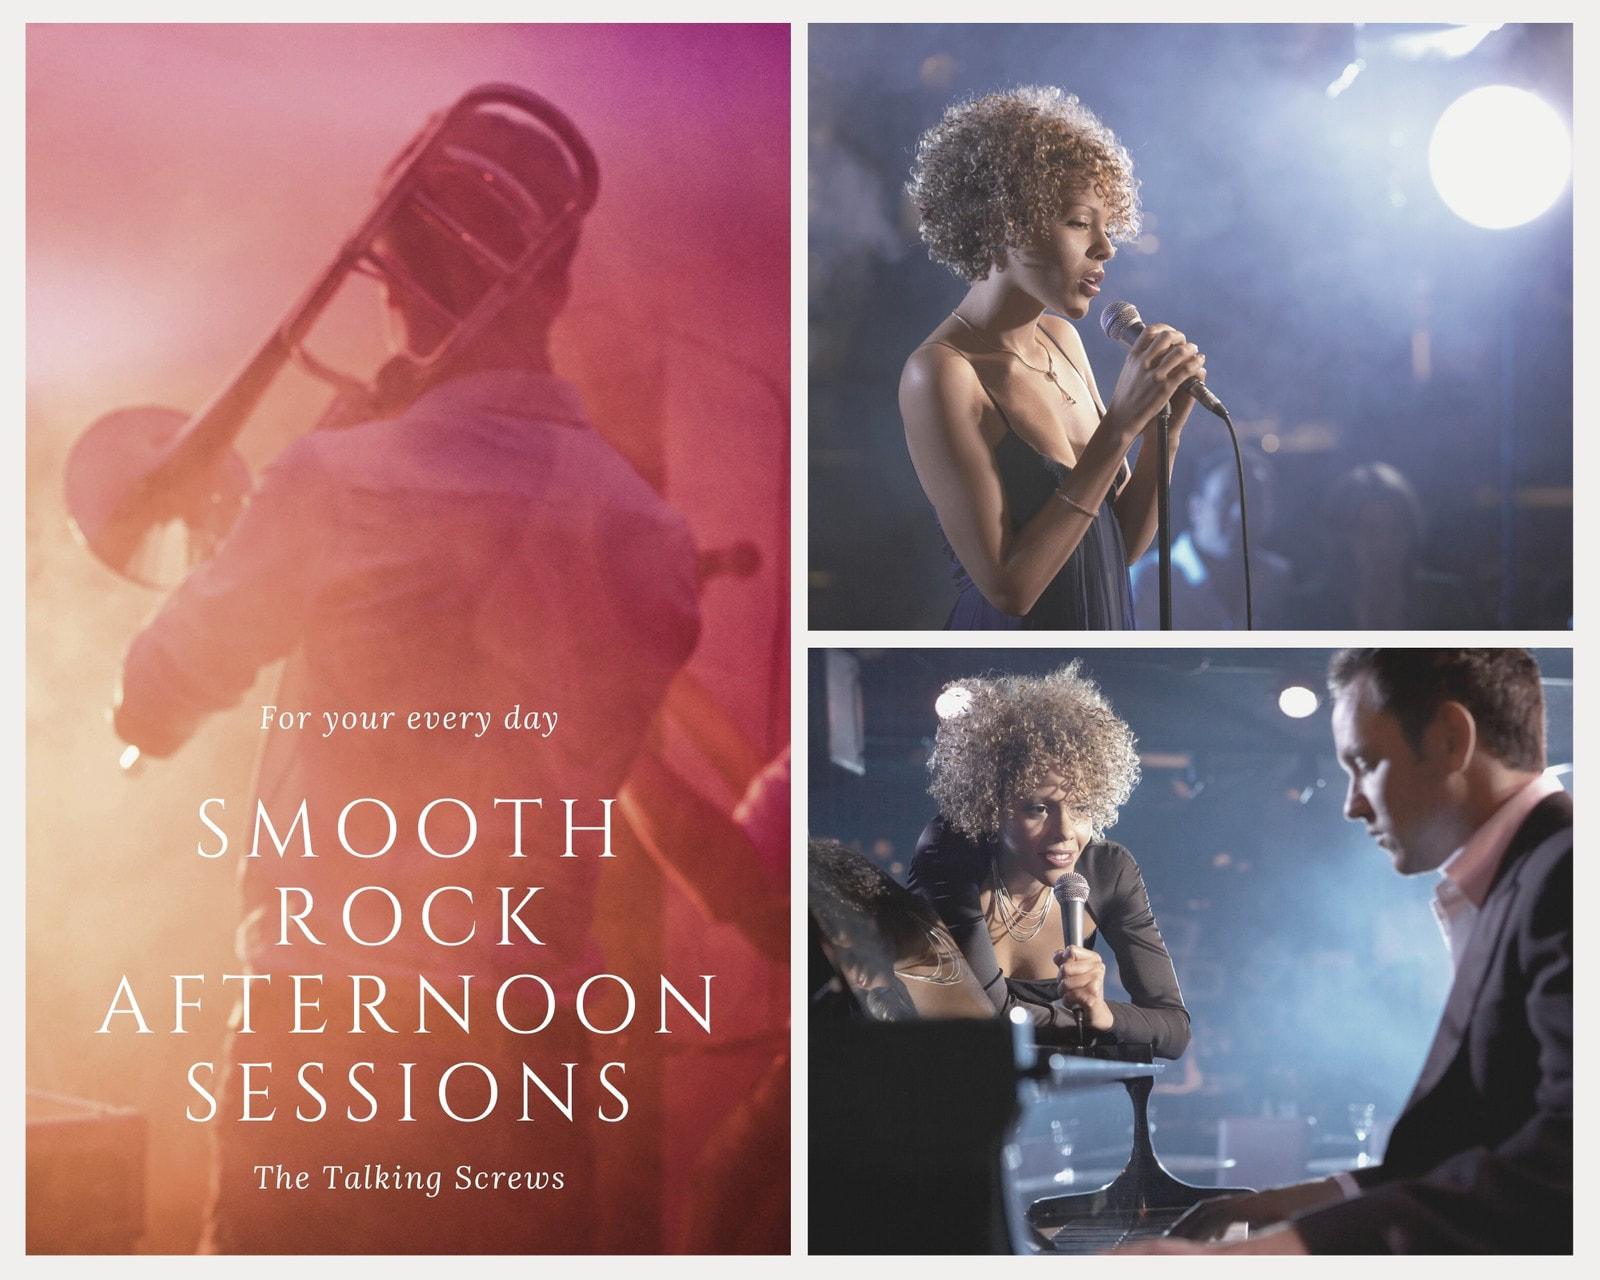 Smooth Rock Sessions Photo Collage